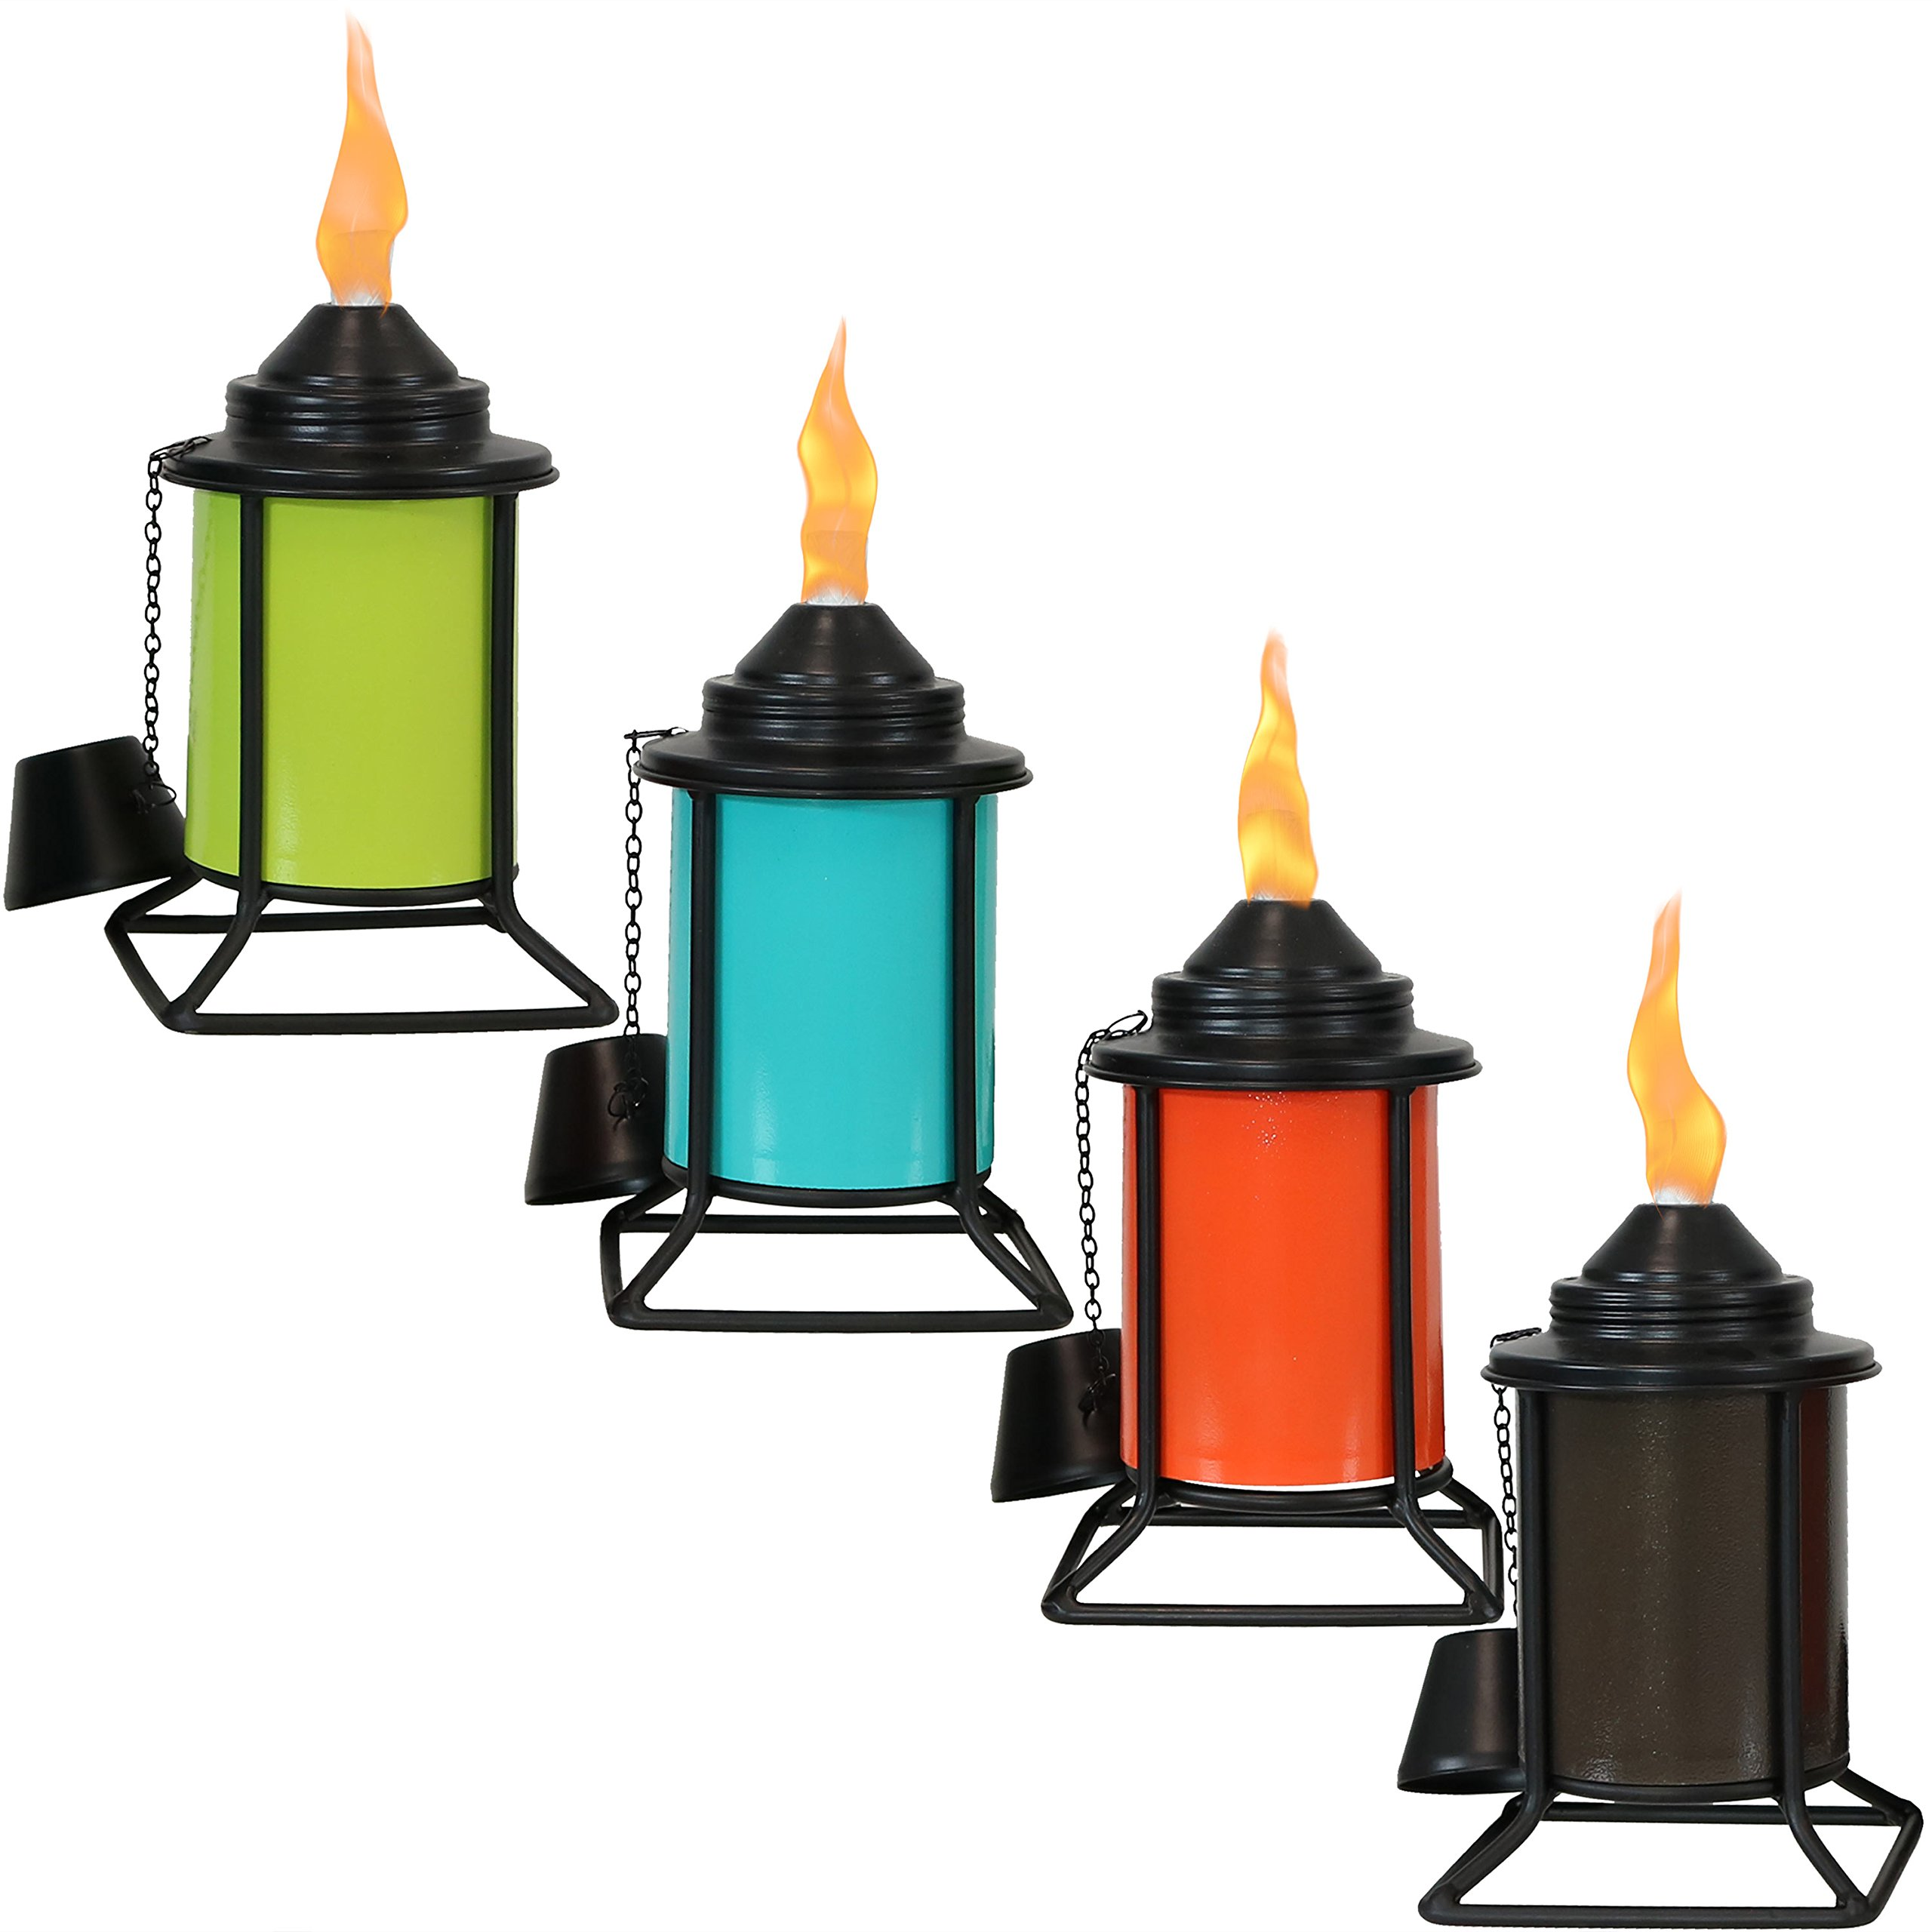 Sunnydaze Metal Tabletop Torches, Outdoor Patio and Lawn Citronella Torch, Multi-Color, Set of 4